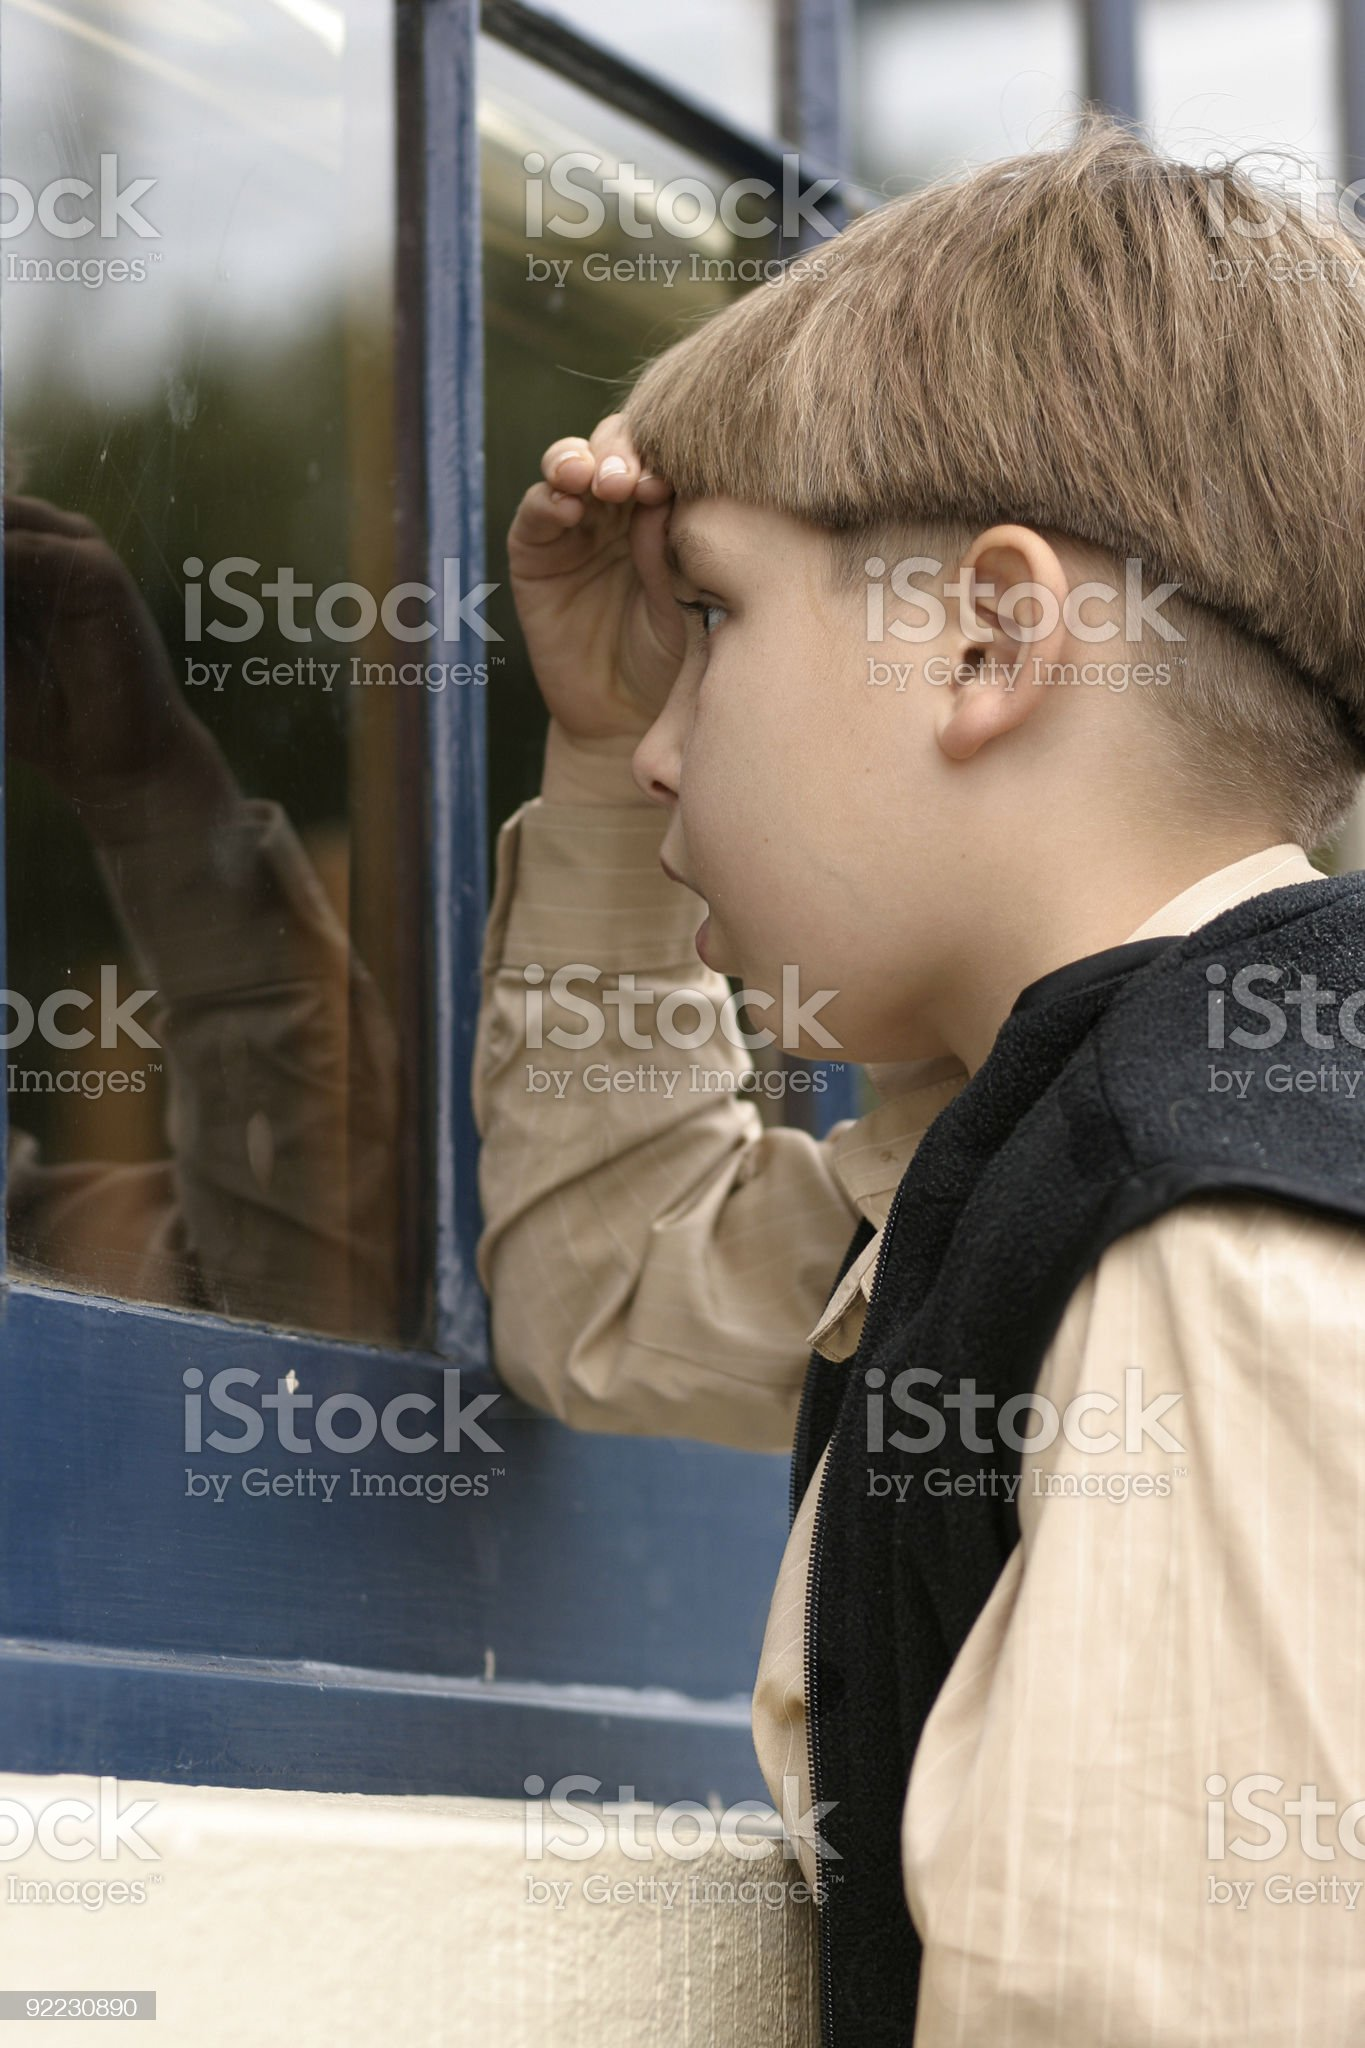 Boy at Storefront royalty-free stock photo